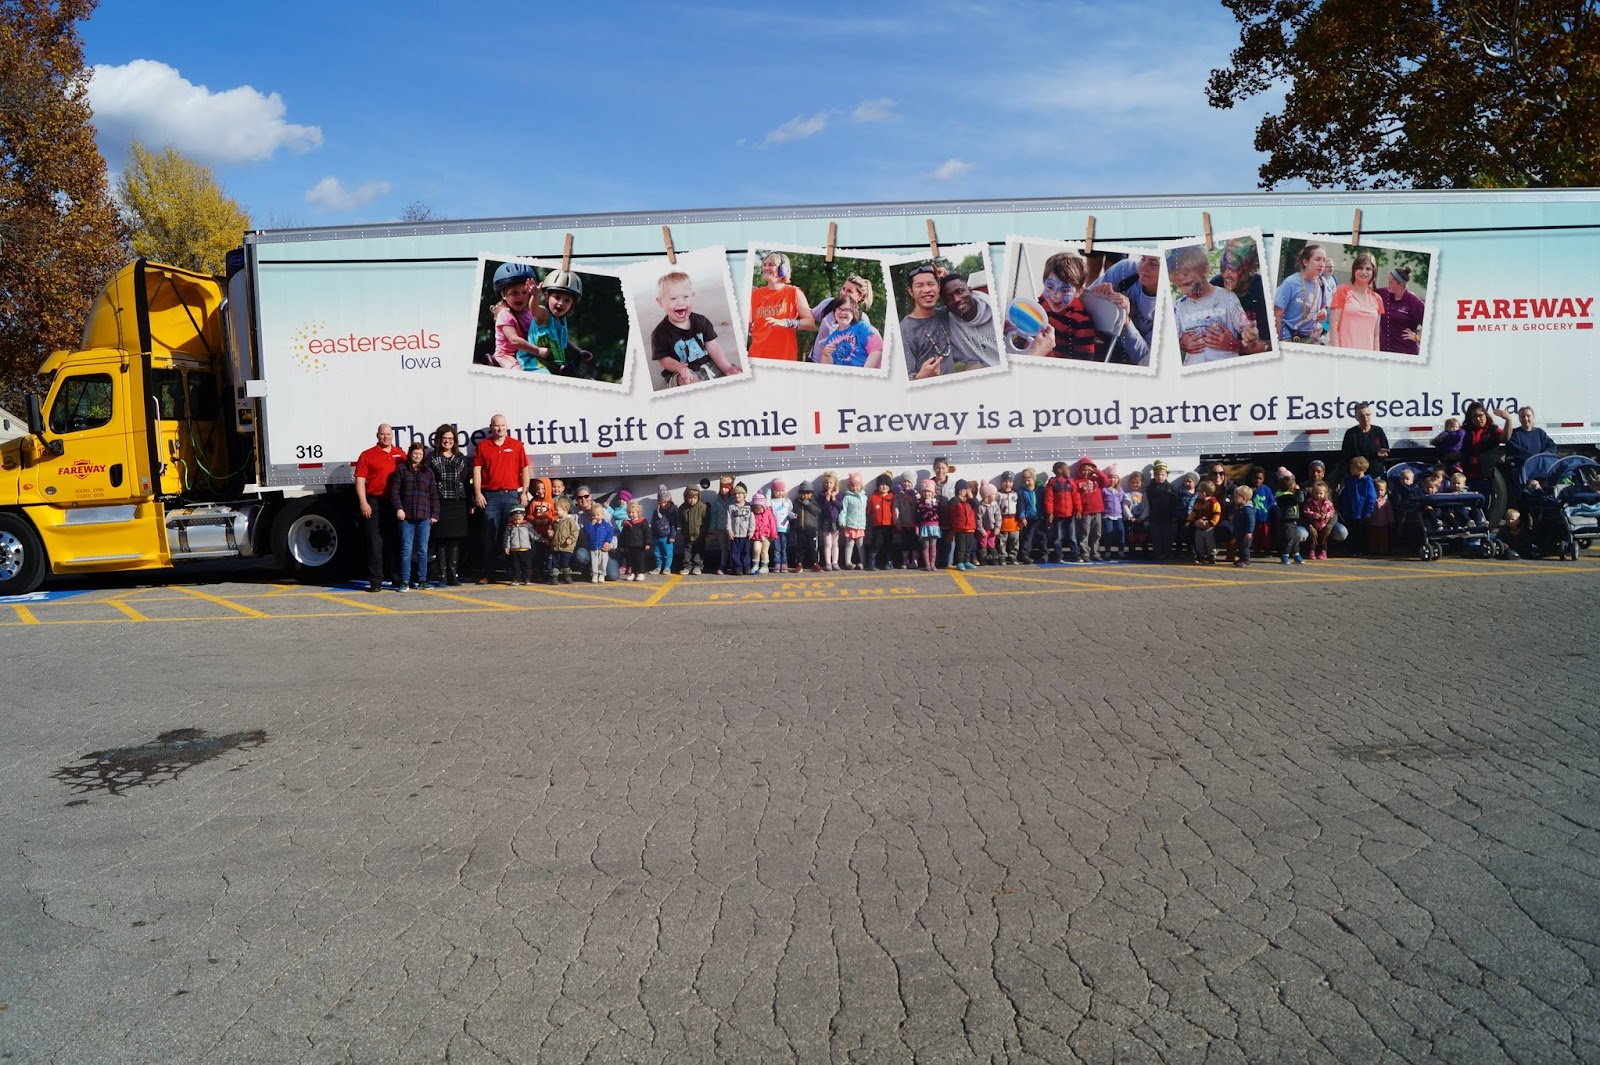 Image of a group of people standing in front of a Fareway truck.